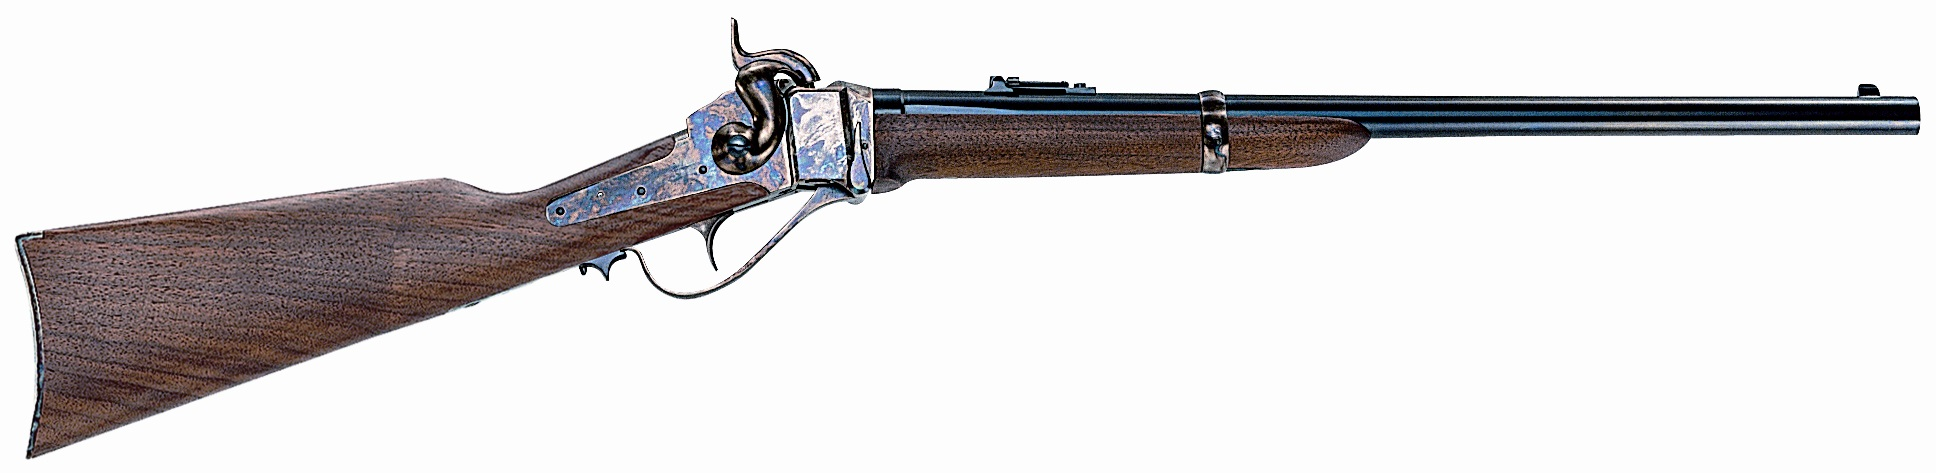 "1863 SHARPS CARBINE .45/70 22"" (Chiappa)"